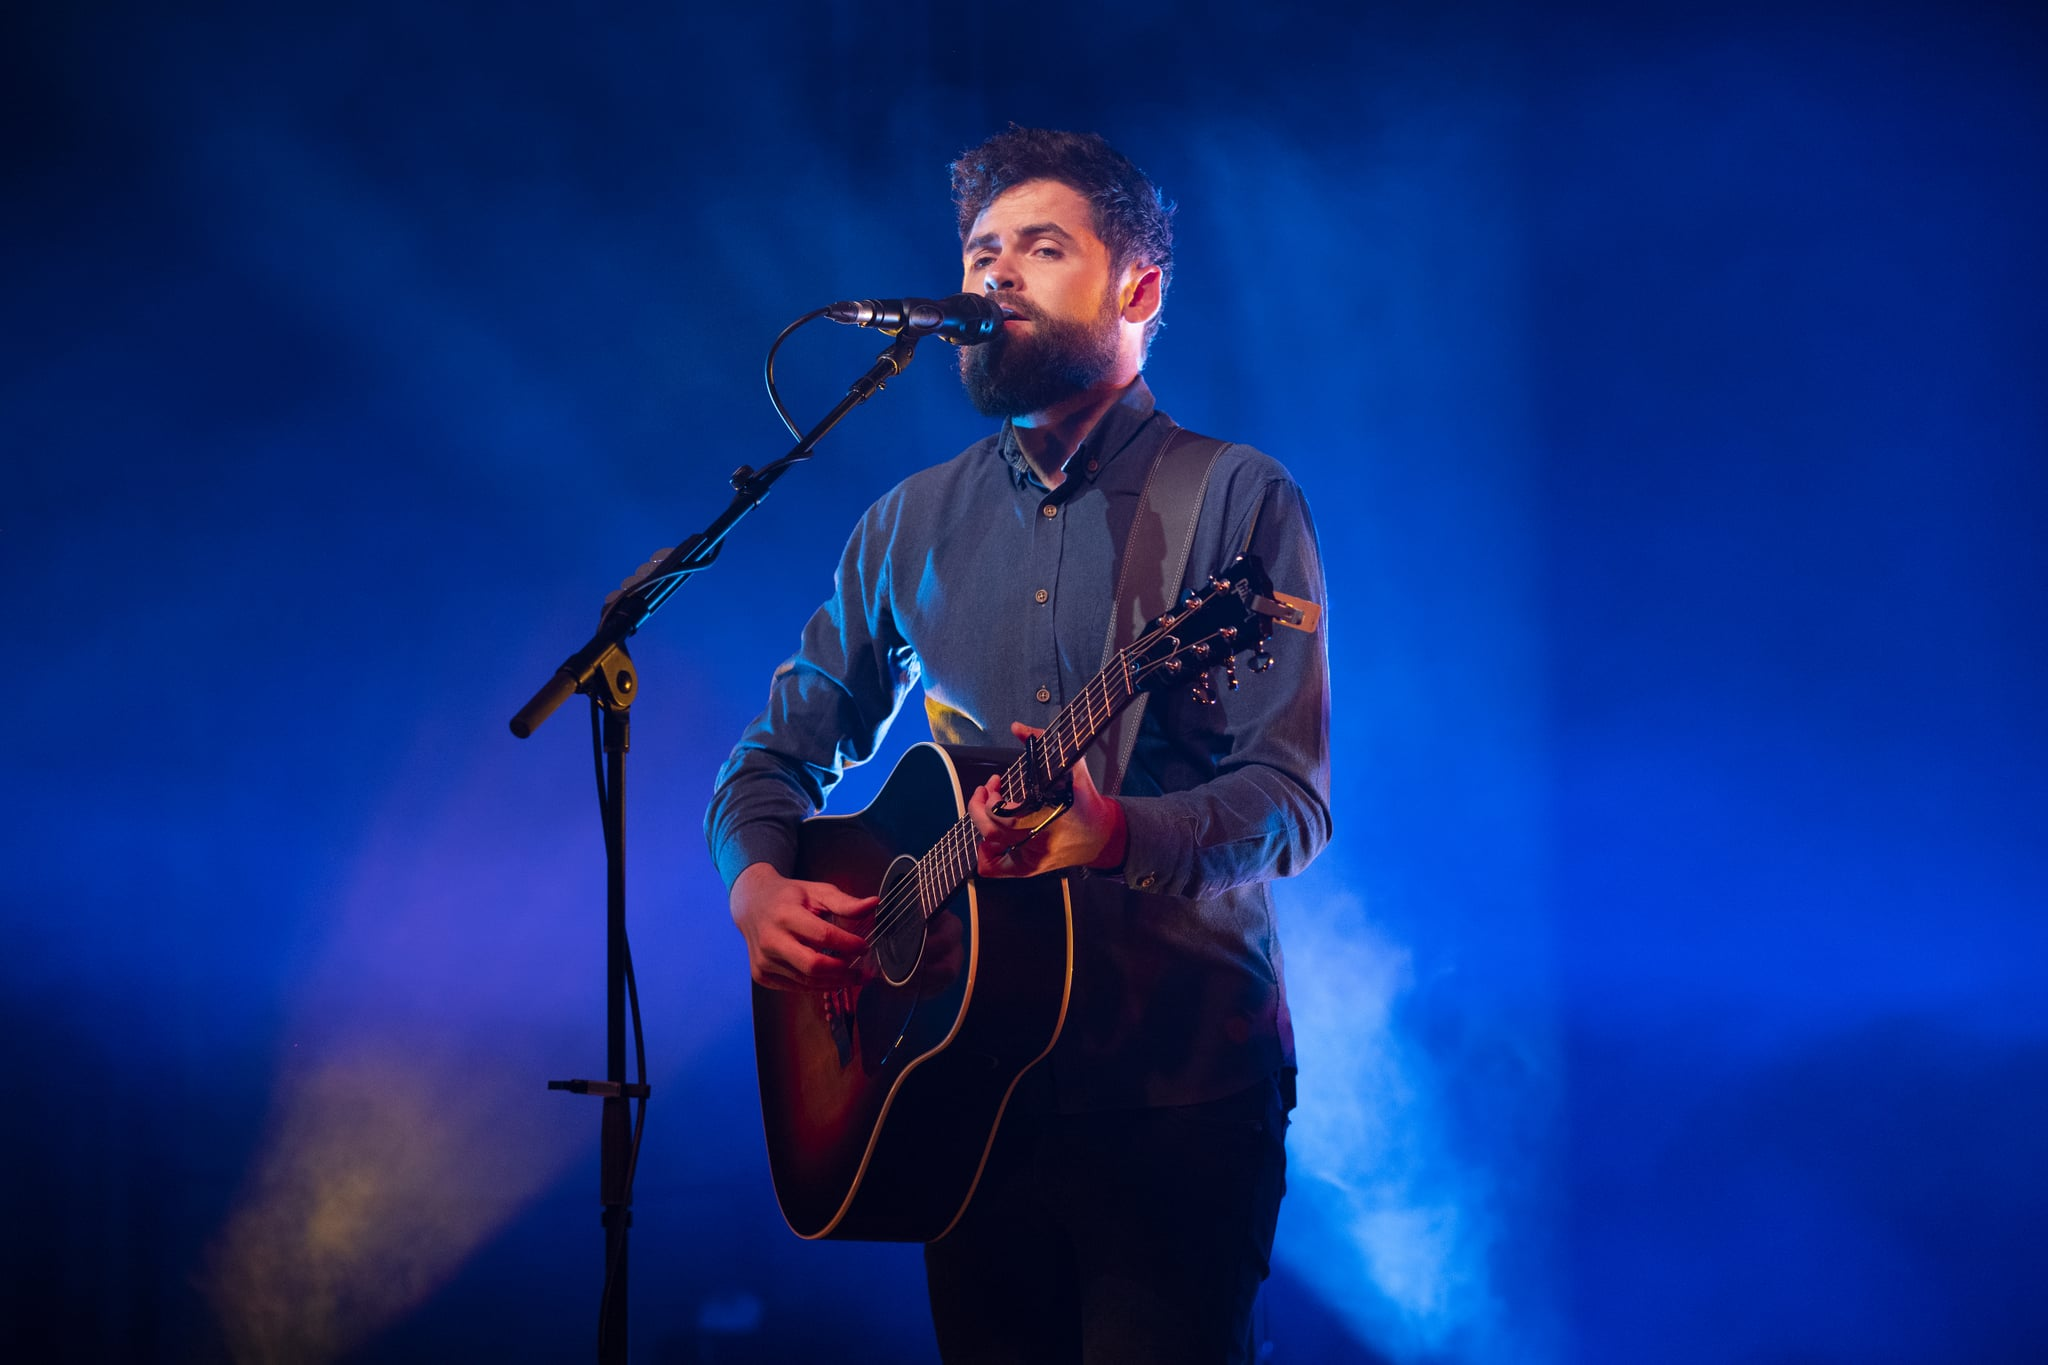 BOLOGNA, ITALY - APRIL 07: Passenger performs onstage at Estragon April 07, 2019 in Bologna, Italy. (Photo by Mathias Marchioni - Iguana Press/Getty Images)